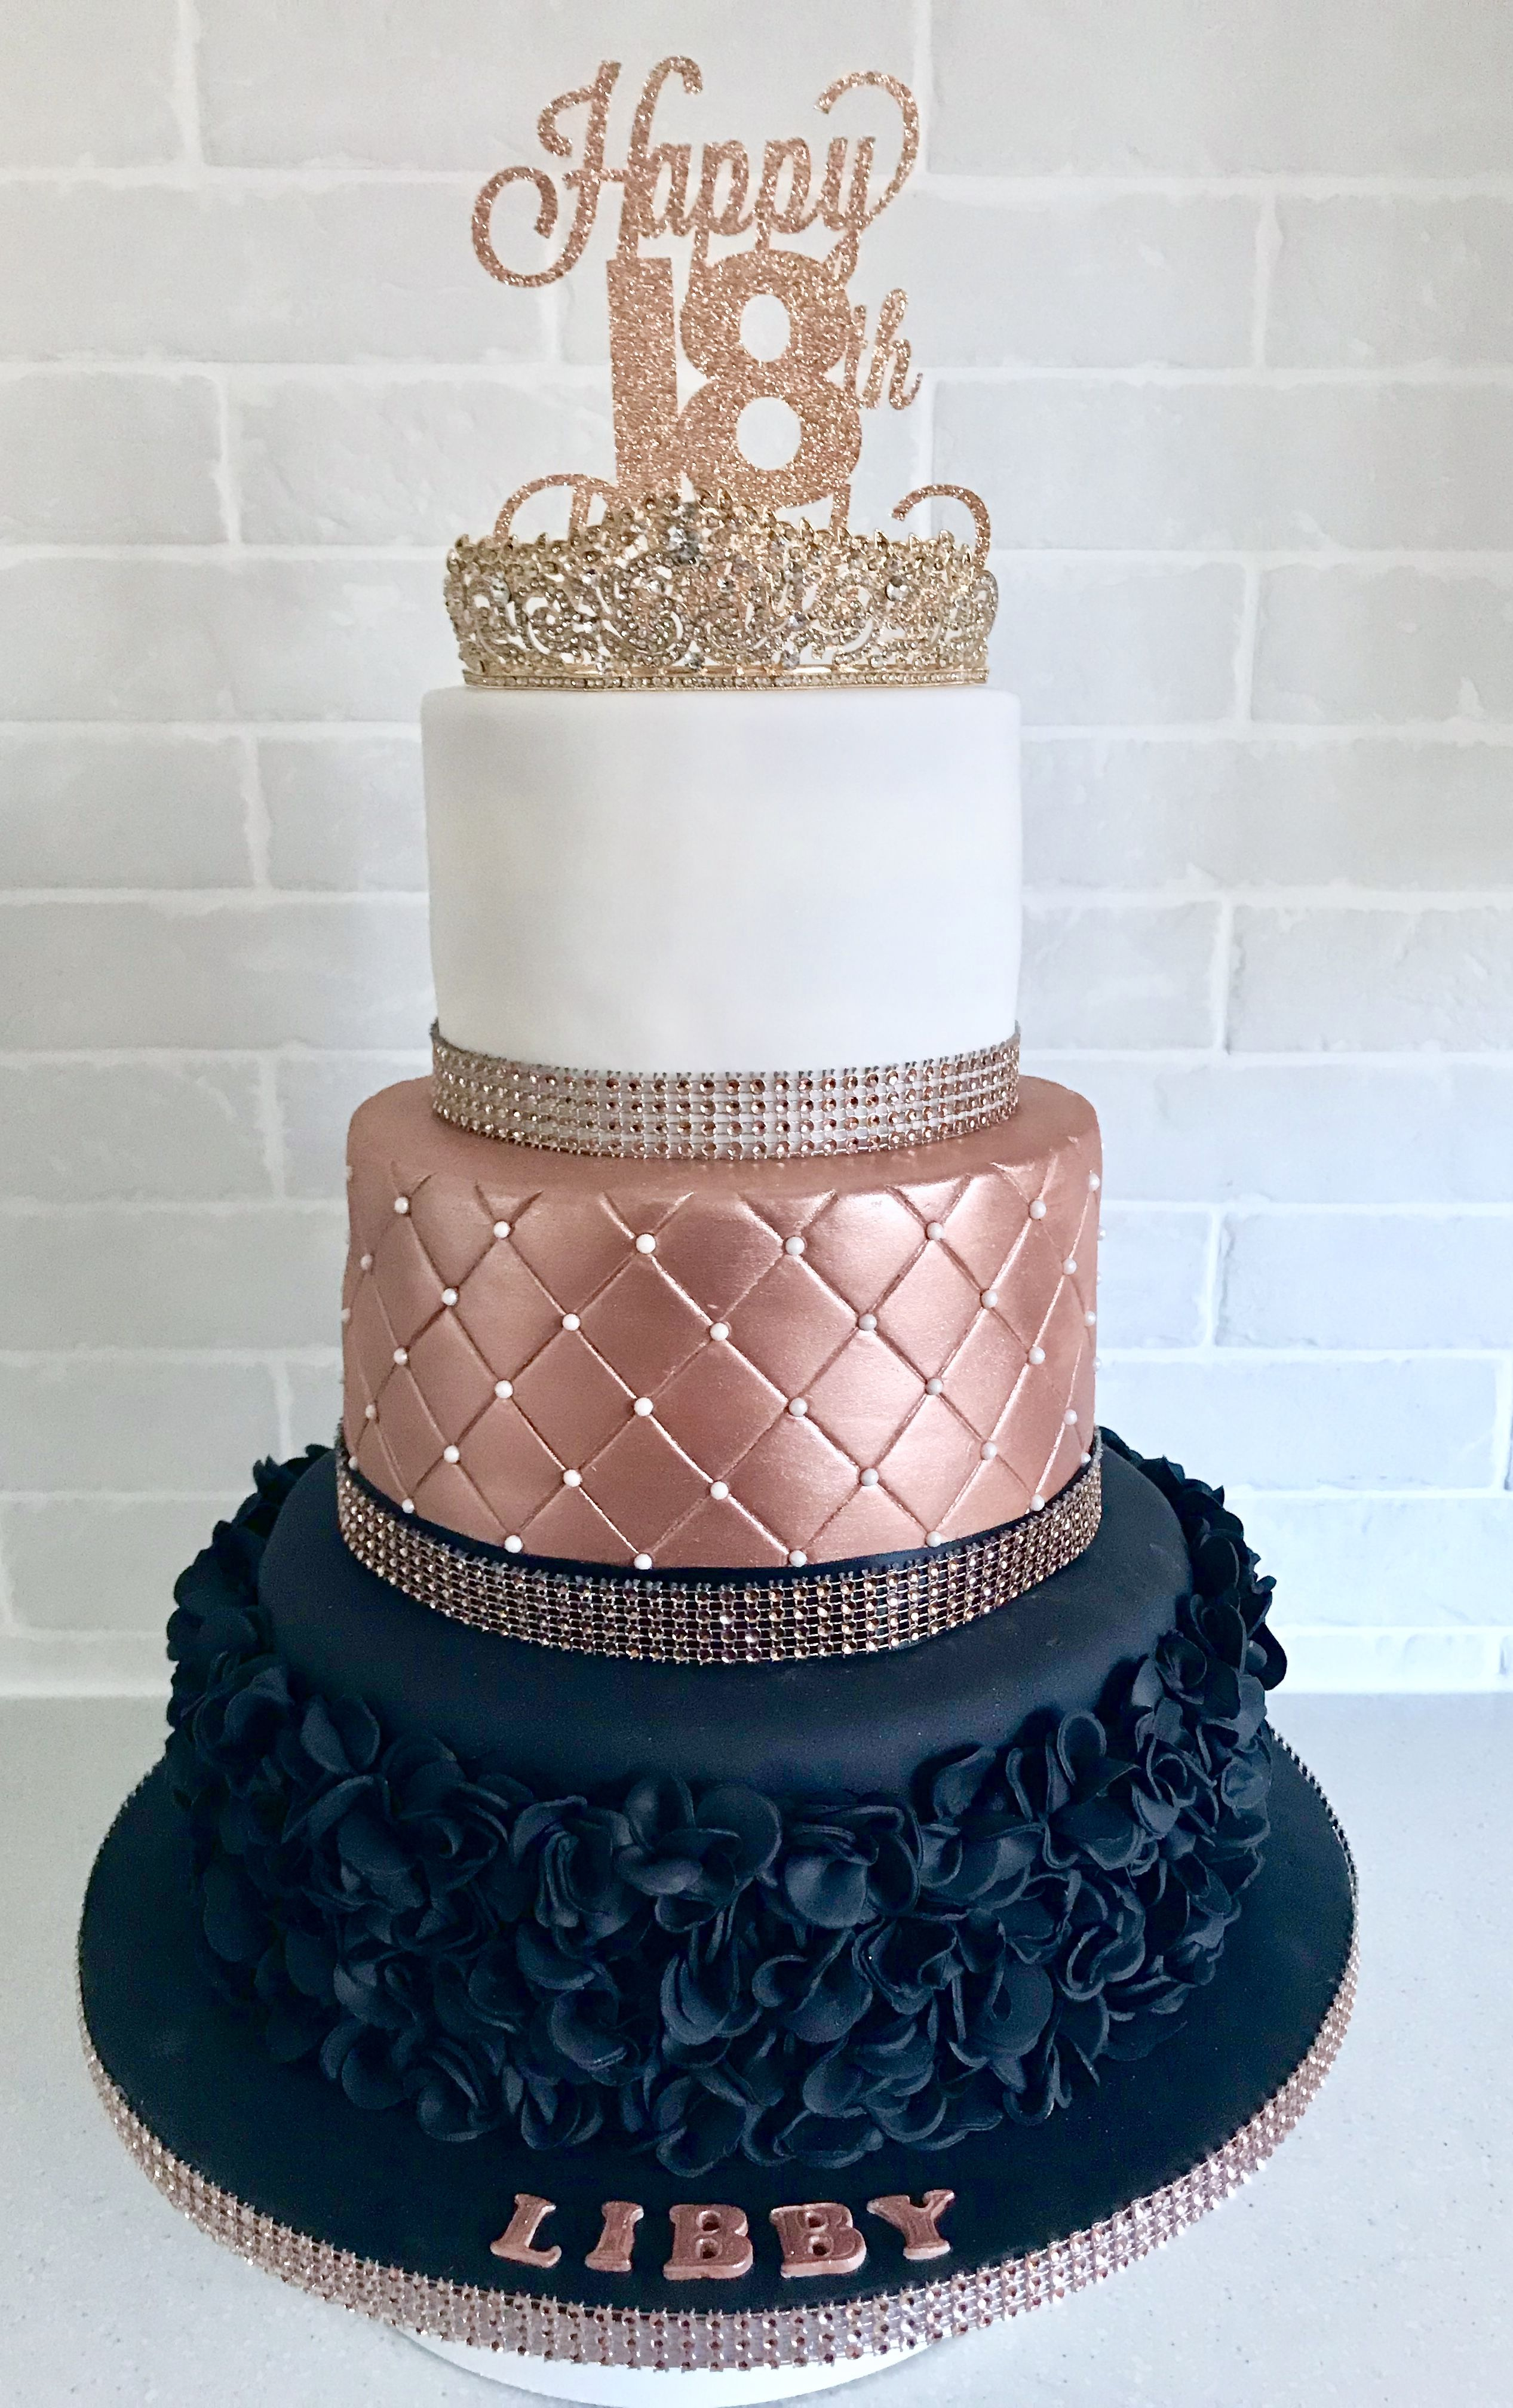 Gorgeous Rose Gold And Black Ruffle Birthday Cake With A